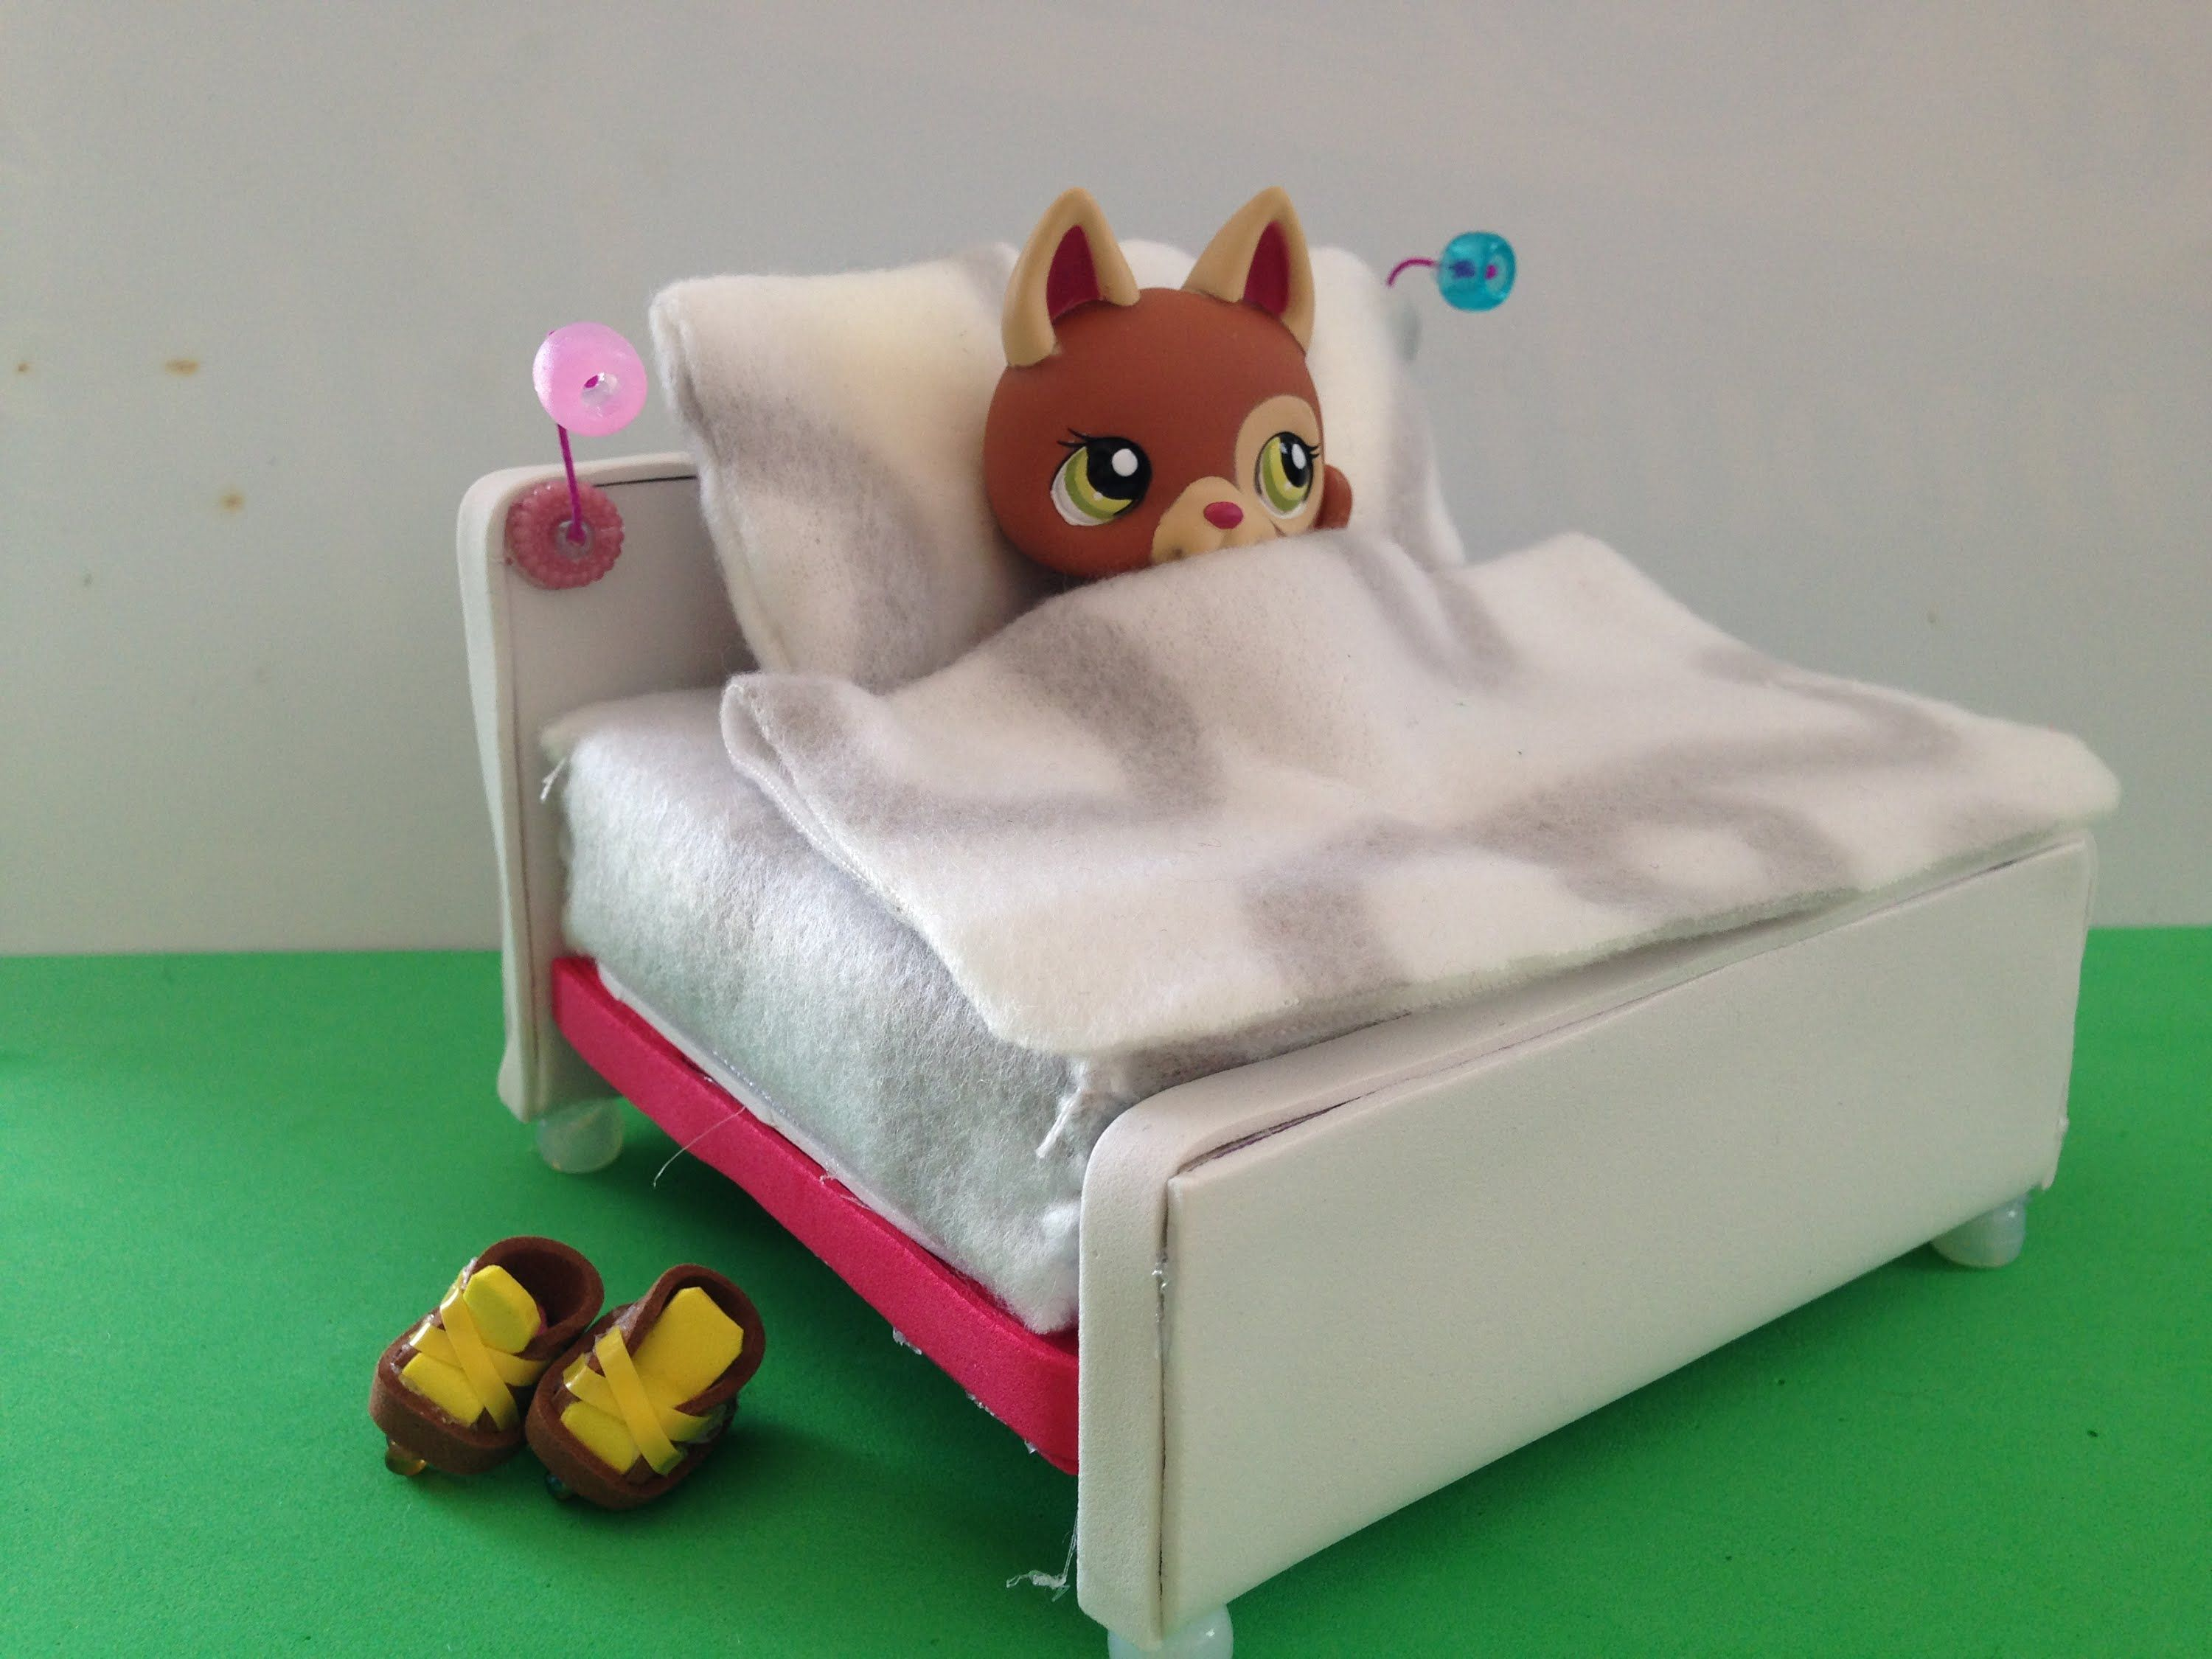 Littlest Pet Shop Bedroom Decor How To Make A Lps Bed Lps Accessories Lps Pinterest Watches